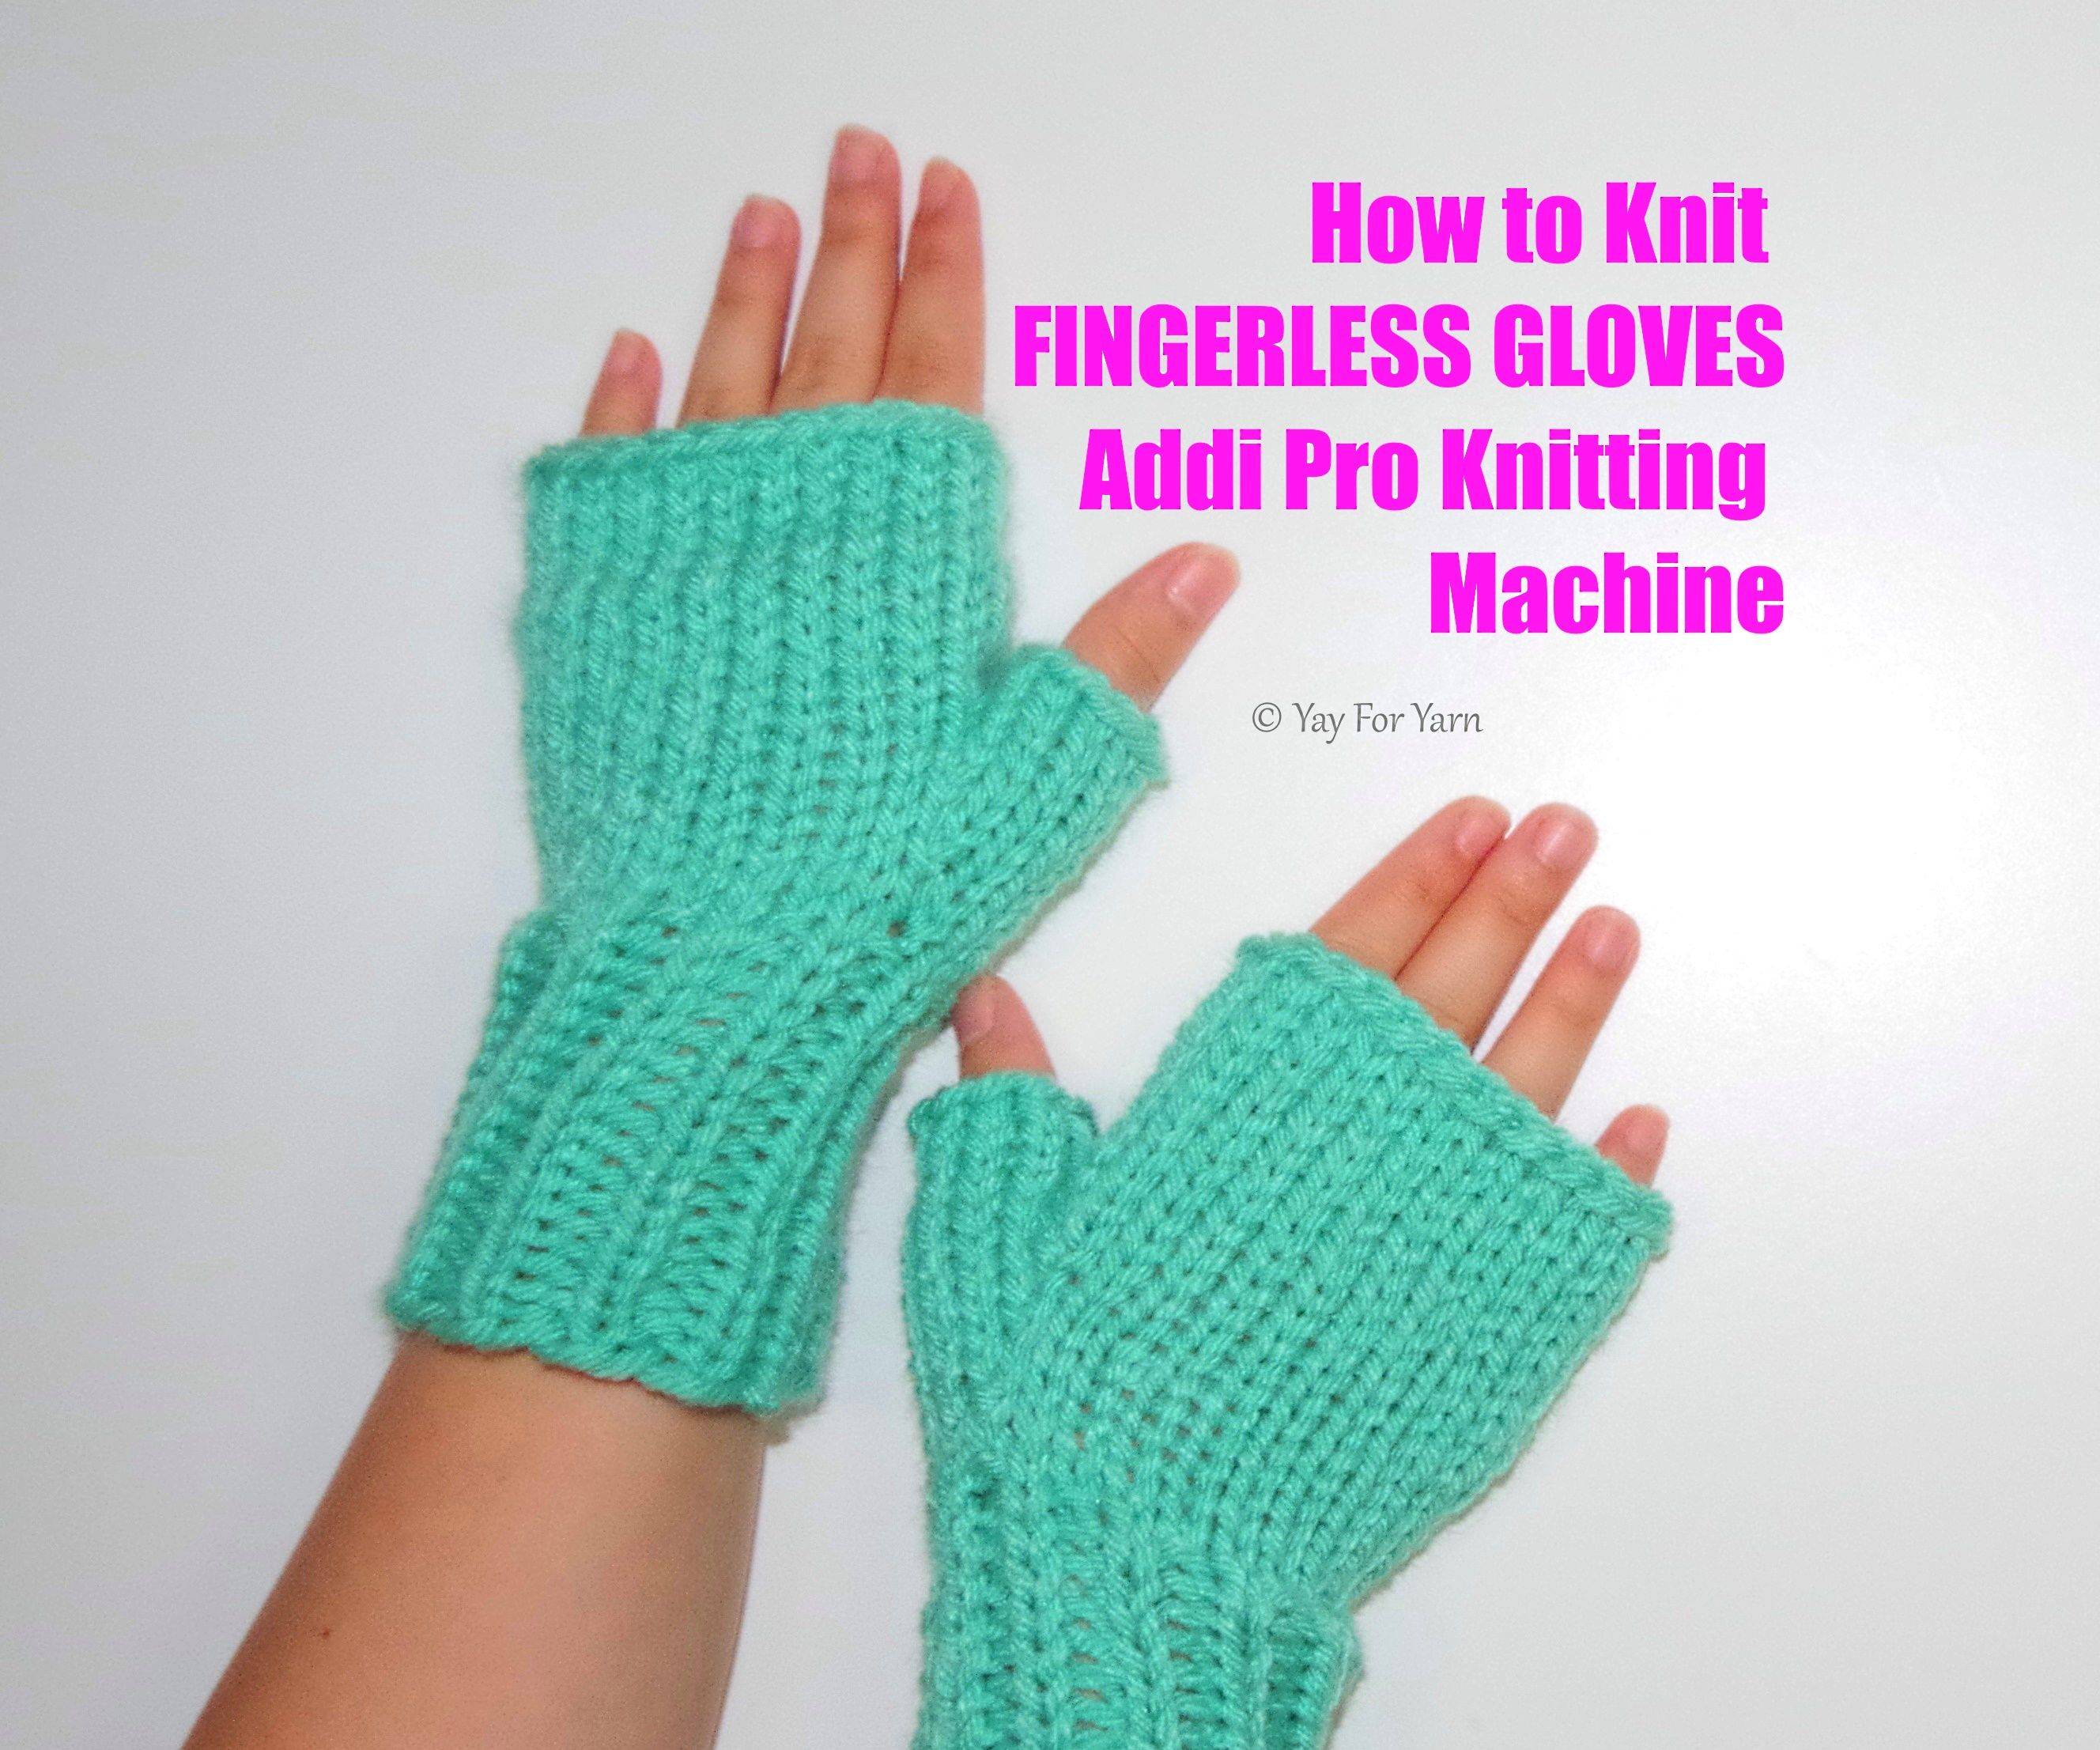 How to Knit Fingerless Gloves on Your Addi Pro Knitting Machine